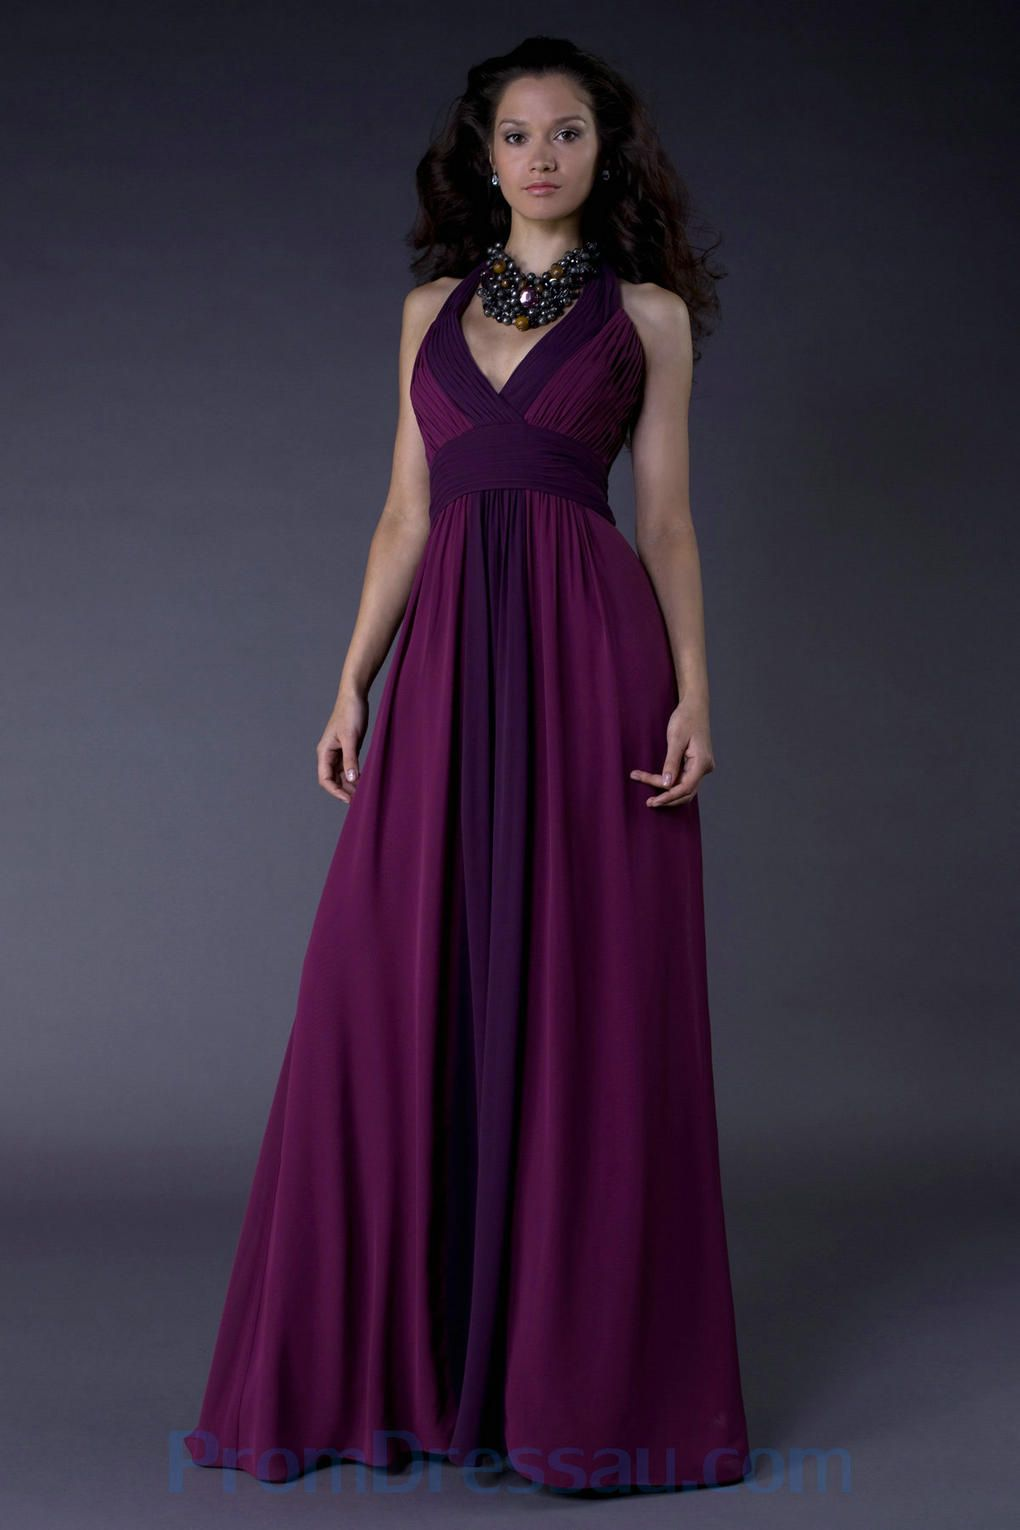 Deep v neck halter chiffon plum purple bonny bridesmaid dress uk deep v neck halter chiffon plum purple bonny bridesmaid dress uk ombrellifo Image collections